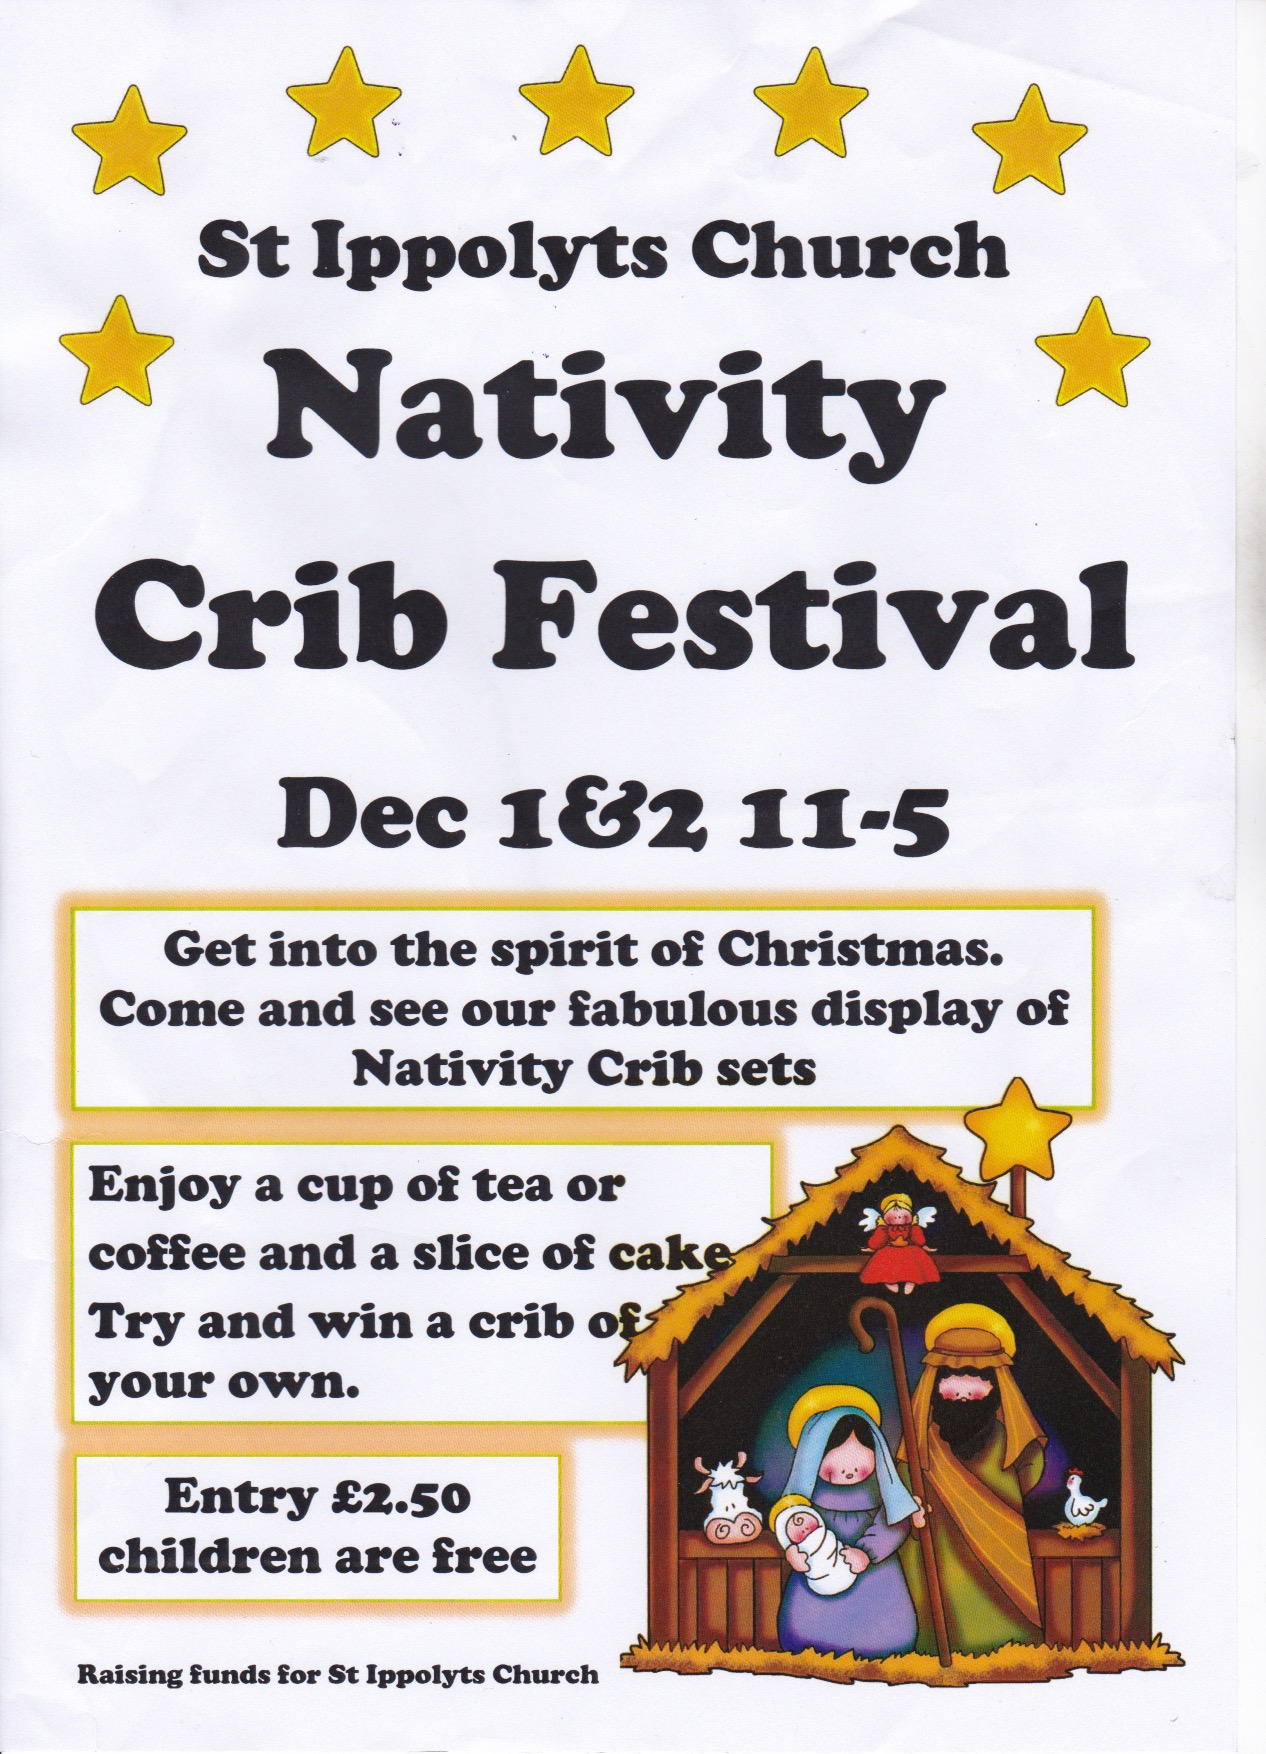 181201 Nativity Crib Festival Poster